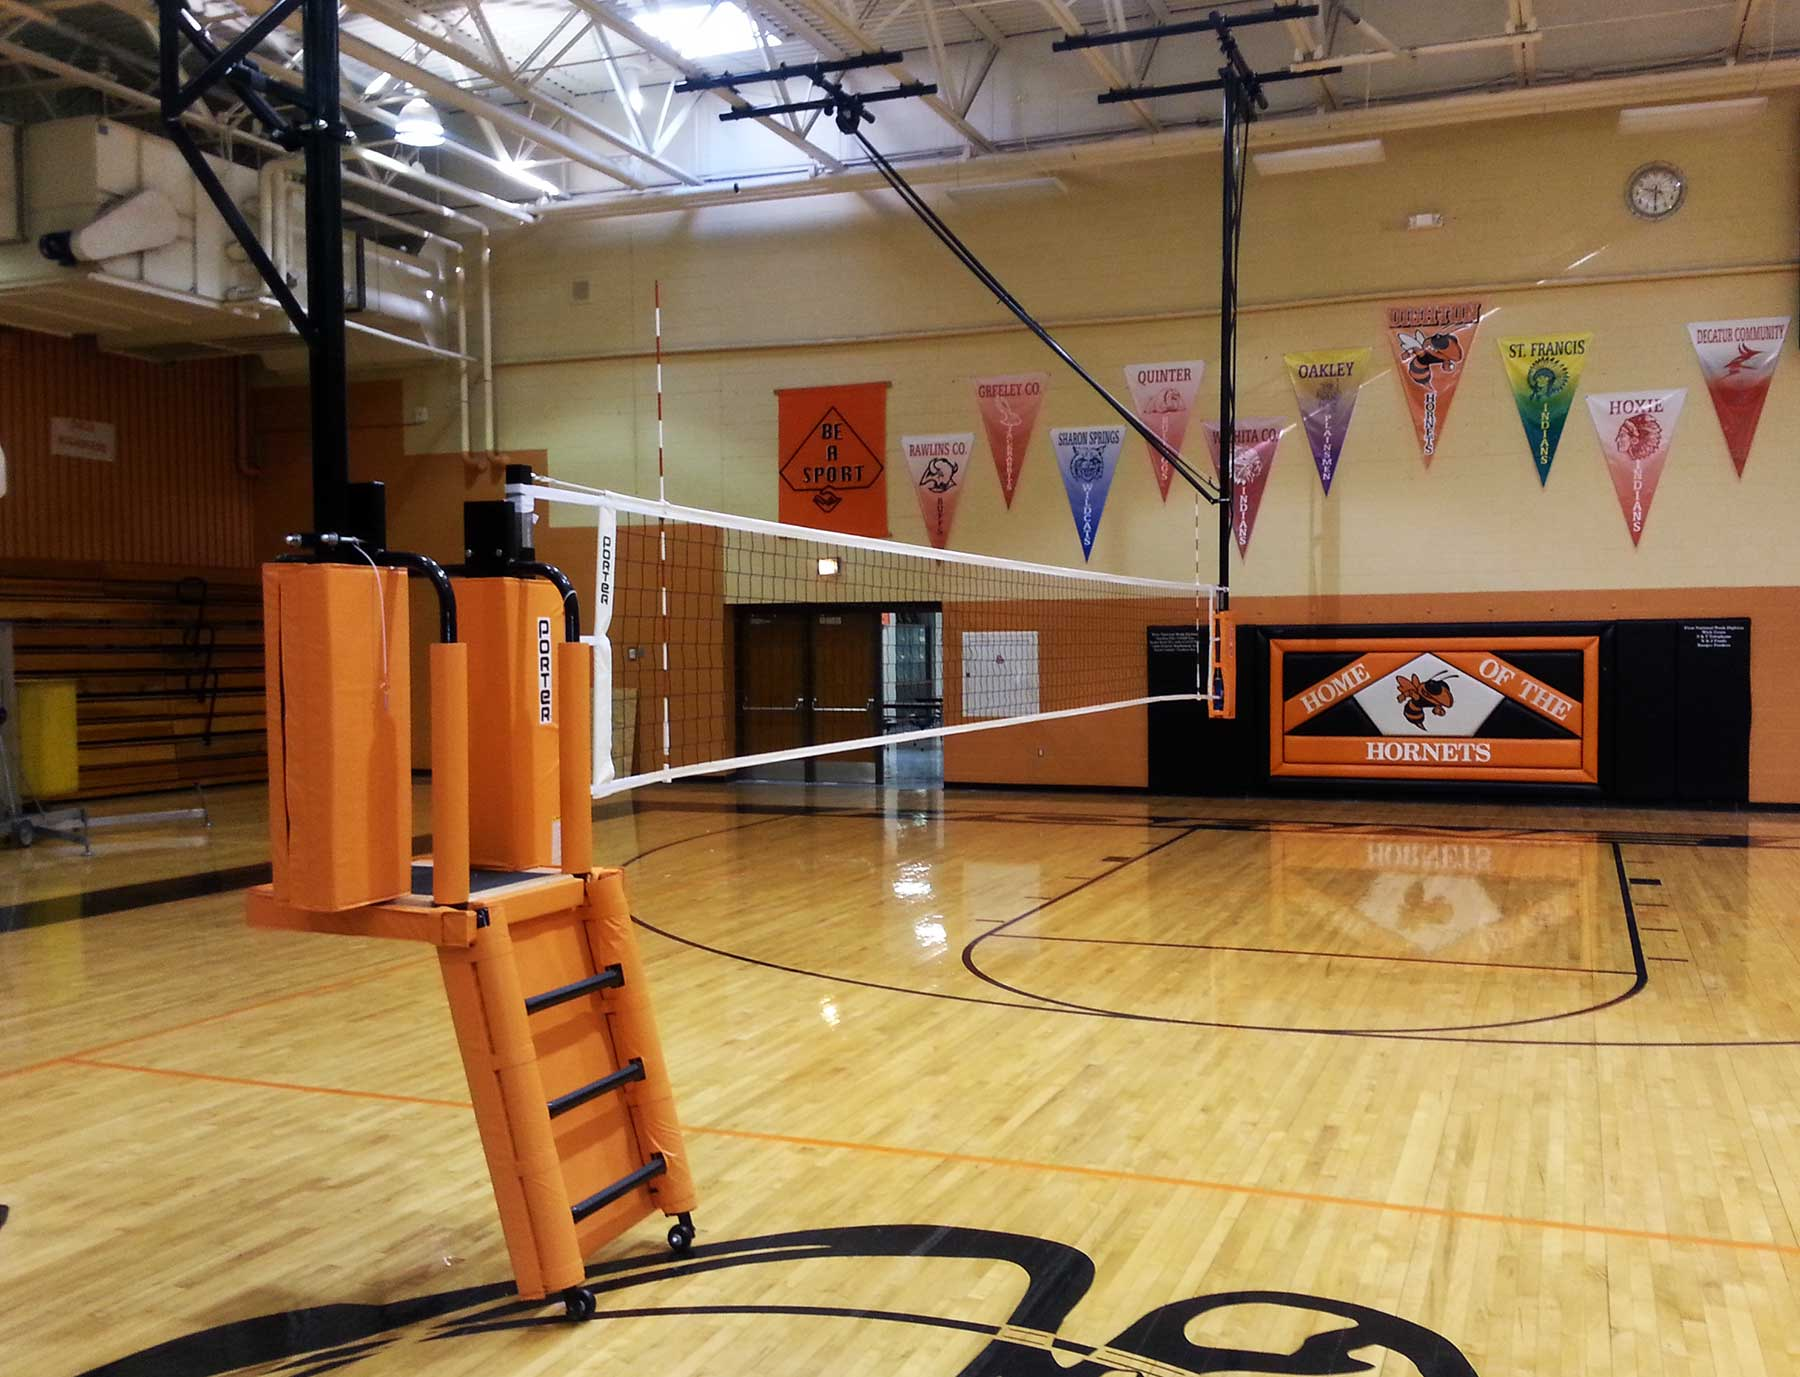 overhead-volleybal-gym-equipment